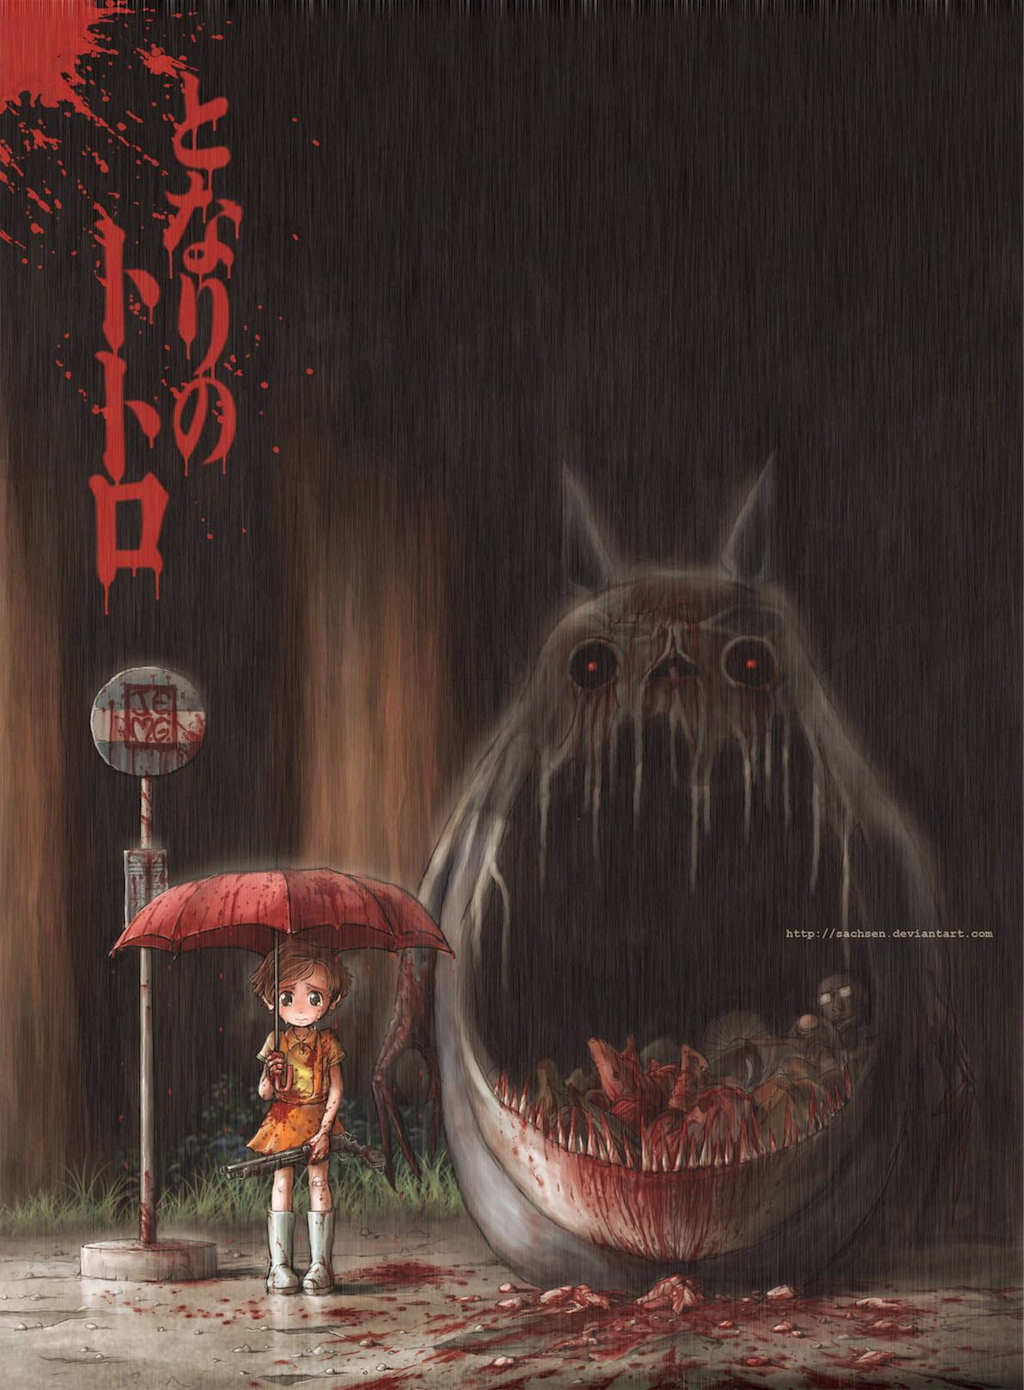 Horroro-version-of-My-Neighbour-Totoro-s